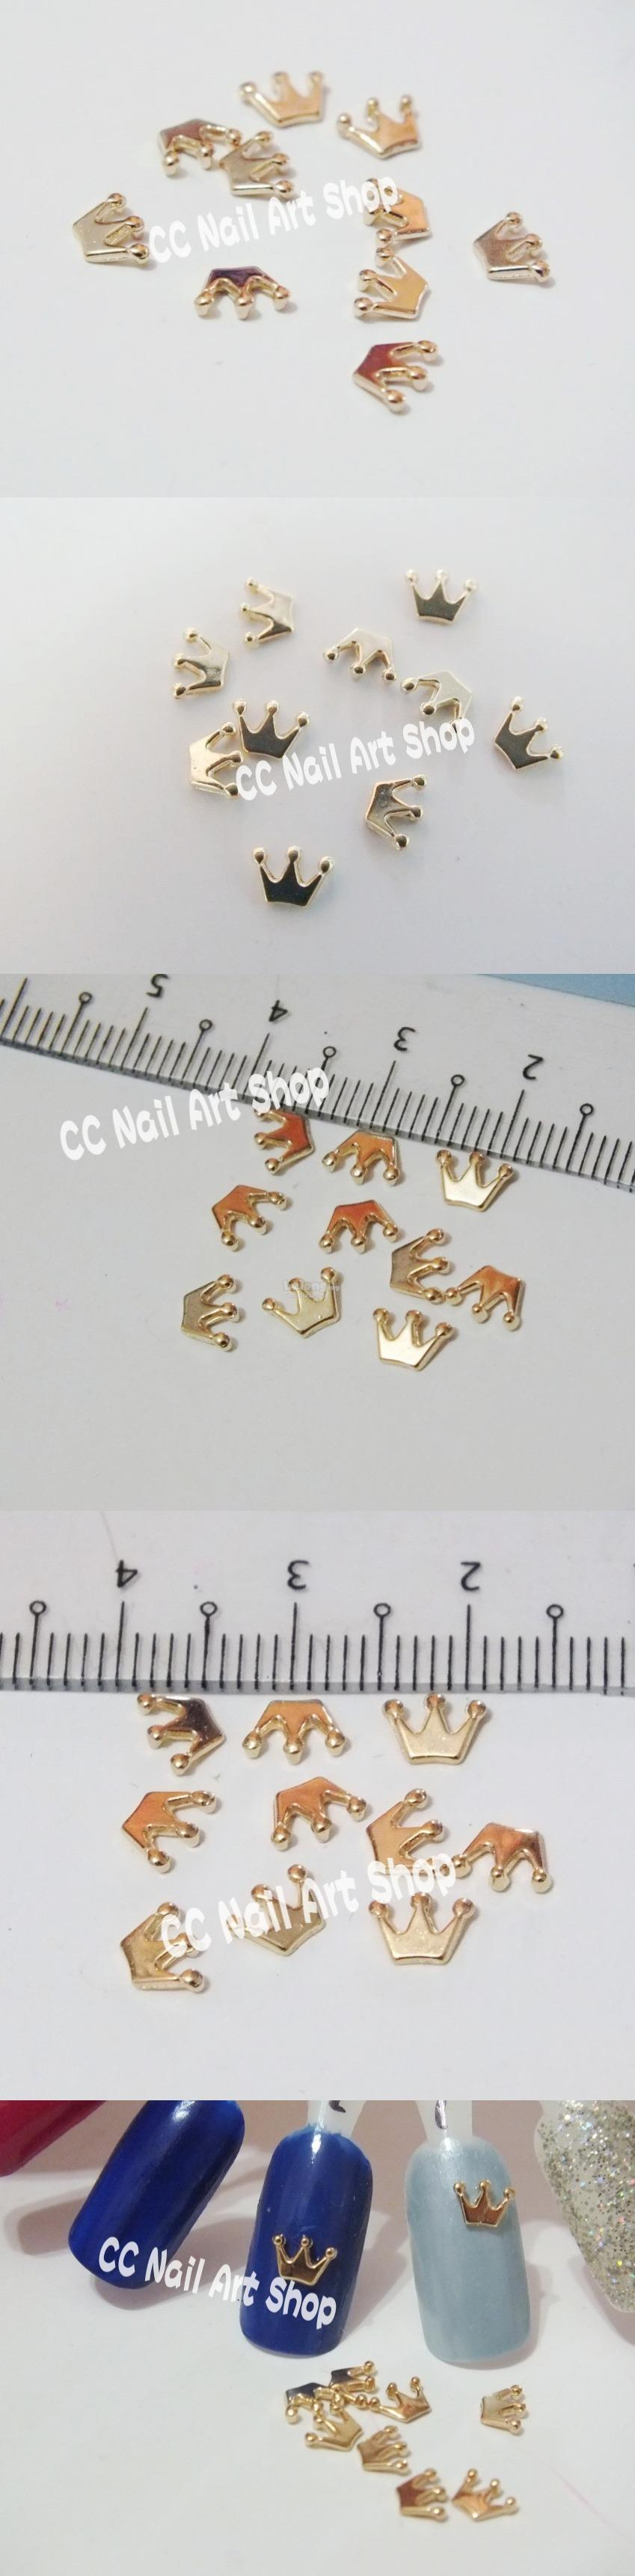 10pcs Gold Crown Nail Art Decoration Metal